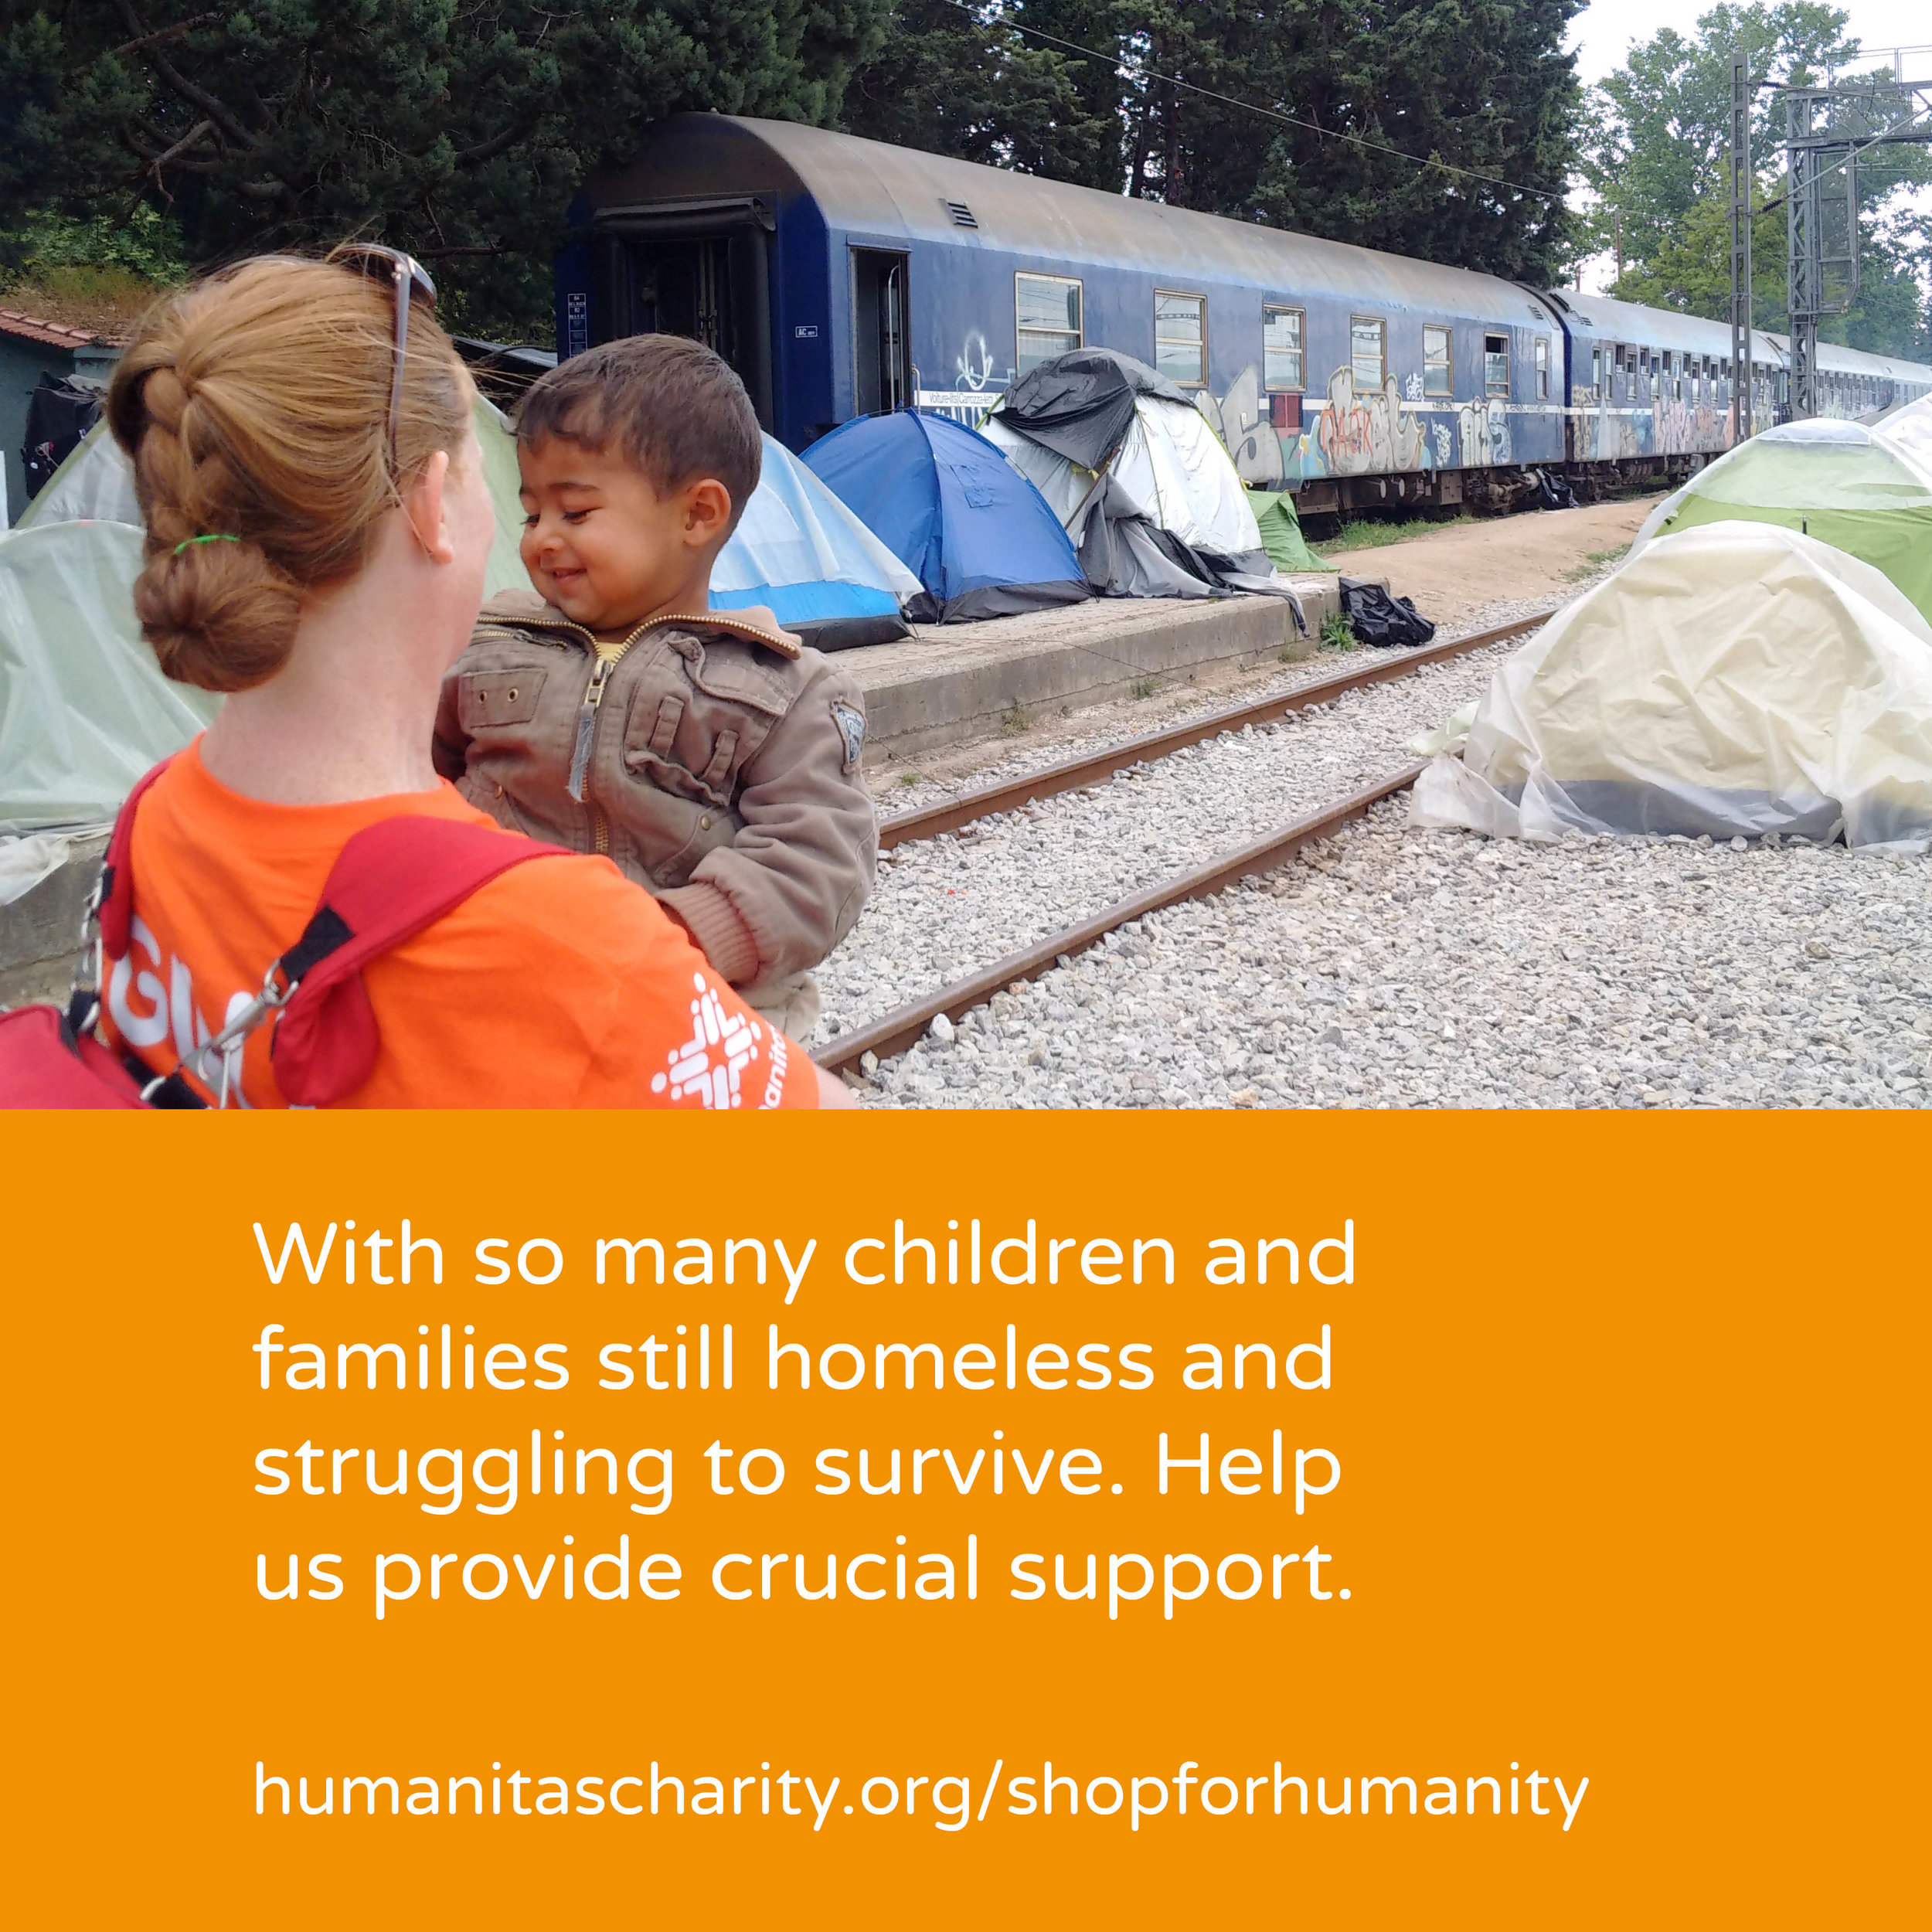 - We developed and launched #ShopForHumanity. A innovative new way of giving where you choose exactly how Humanitas uses your donation. By buying items that are sent to individuals in need around the world. You decide how you want to help improve lives. From a winter coat for an orphaned child in Romania, to books for schools in Ghana or medical support for refugees. An online shop where what you add to your cart is purchased and given out on behalf of the charity.